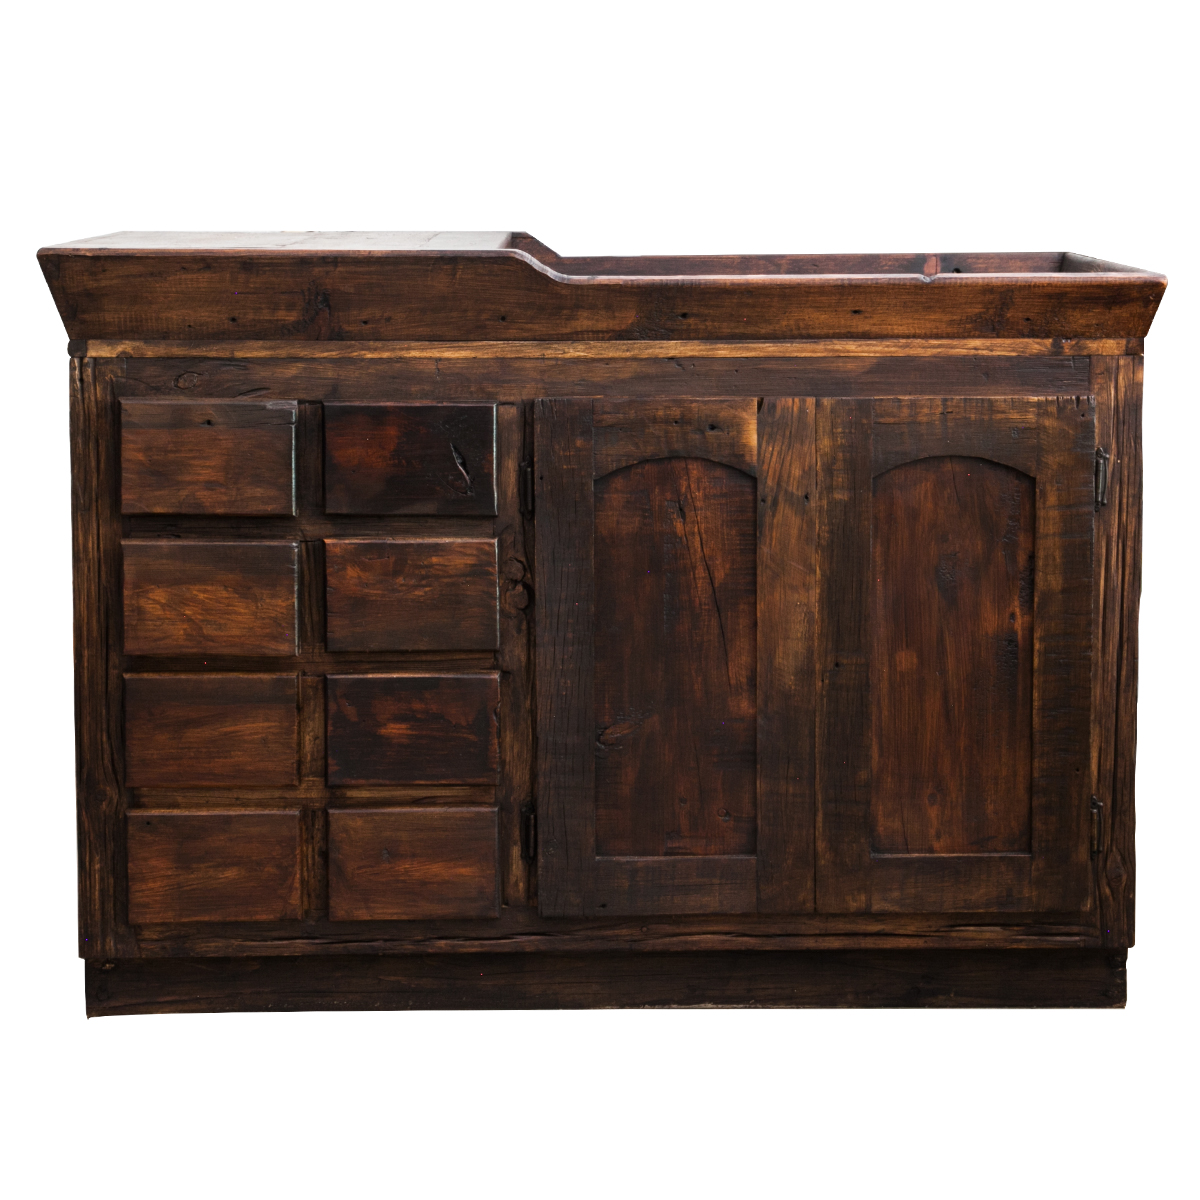 Alden reclaimed bathroom vanity for sale perfect fit for for Restroom vanity